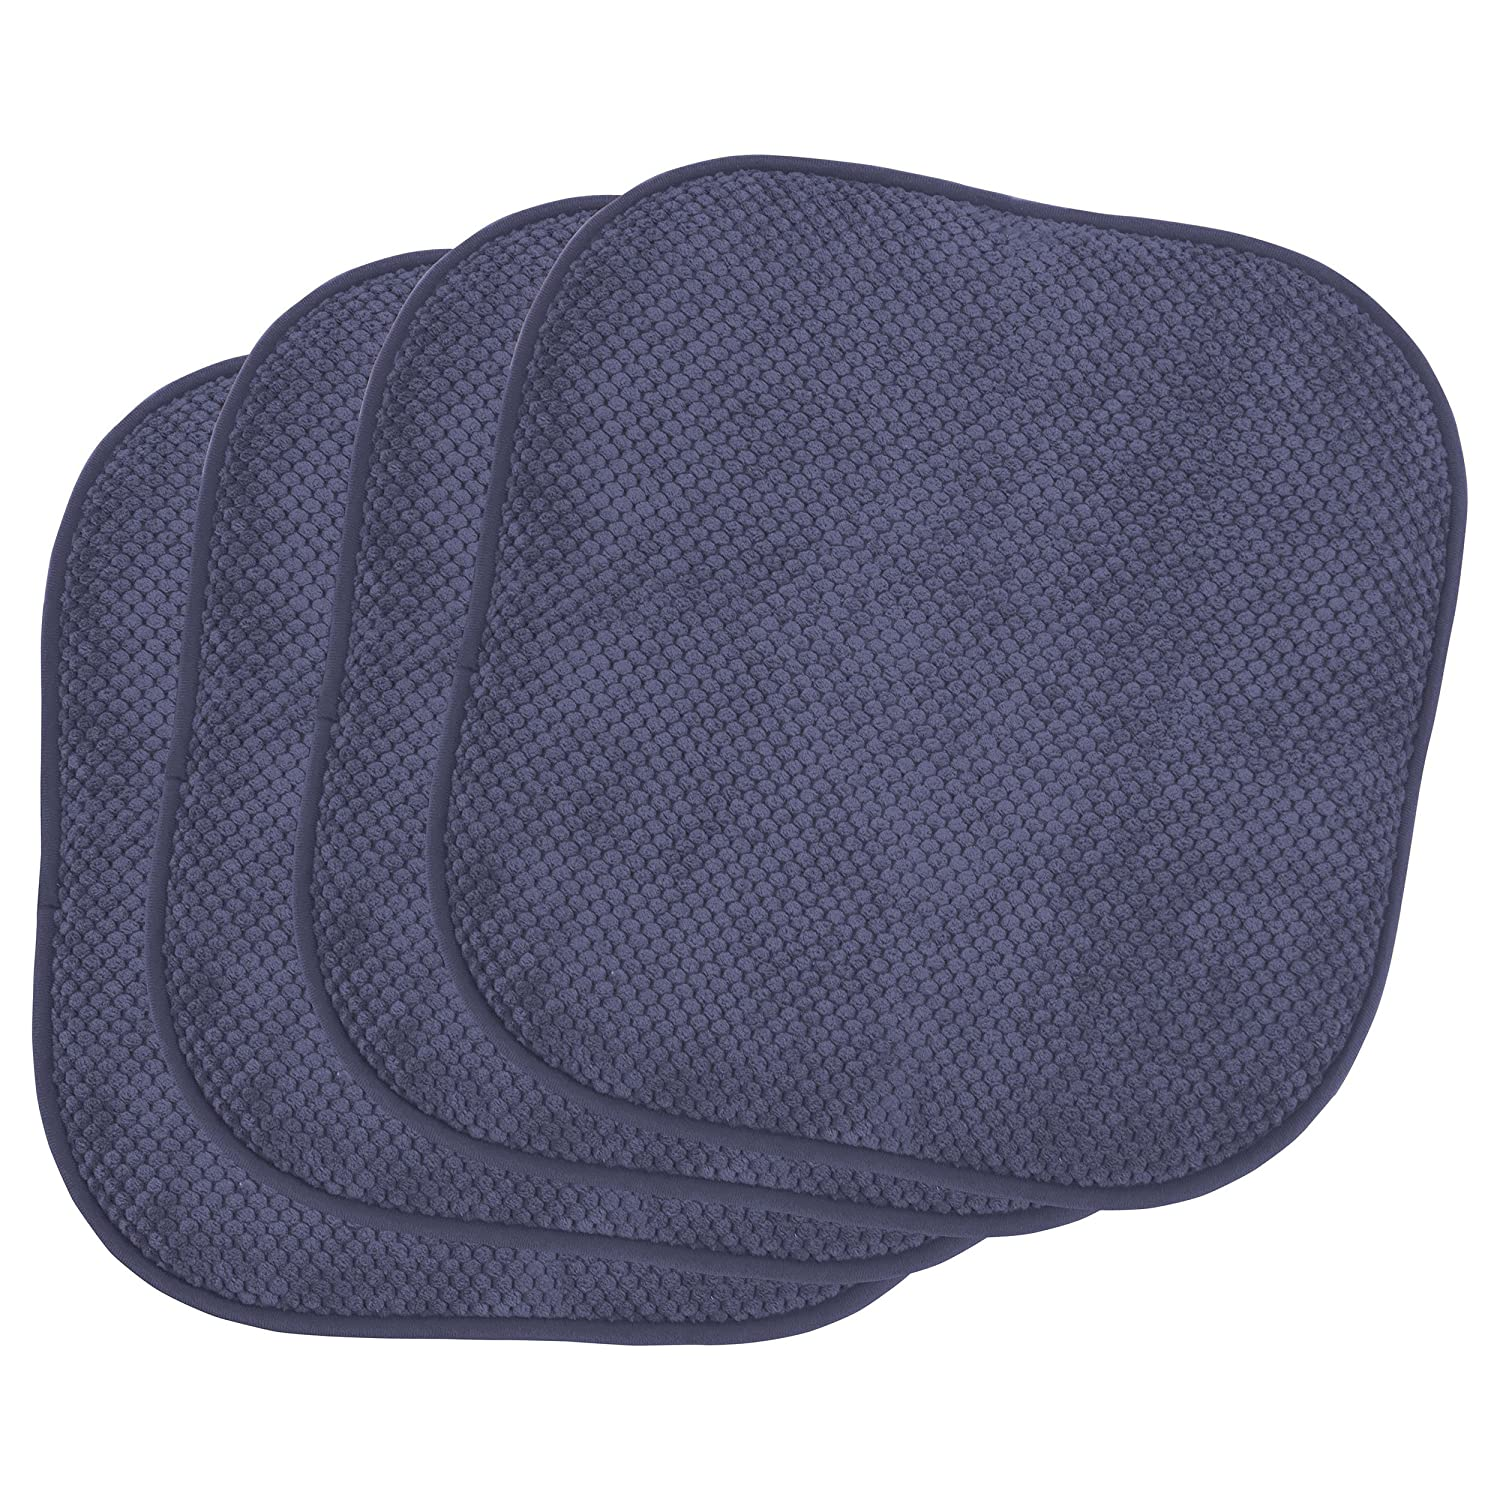 Set of 2 Black Creative Home Ideas YMO001640 Bounce Comfort Bon Appetite Memory Foam 17 x 16 in Cushioned Chair Pad